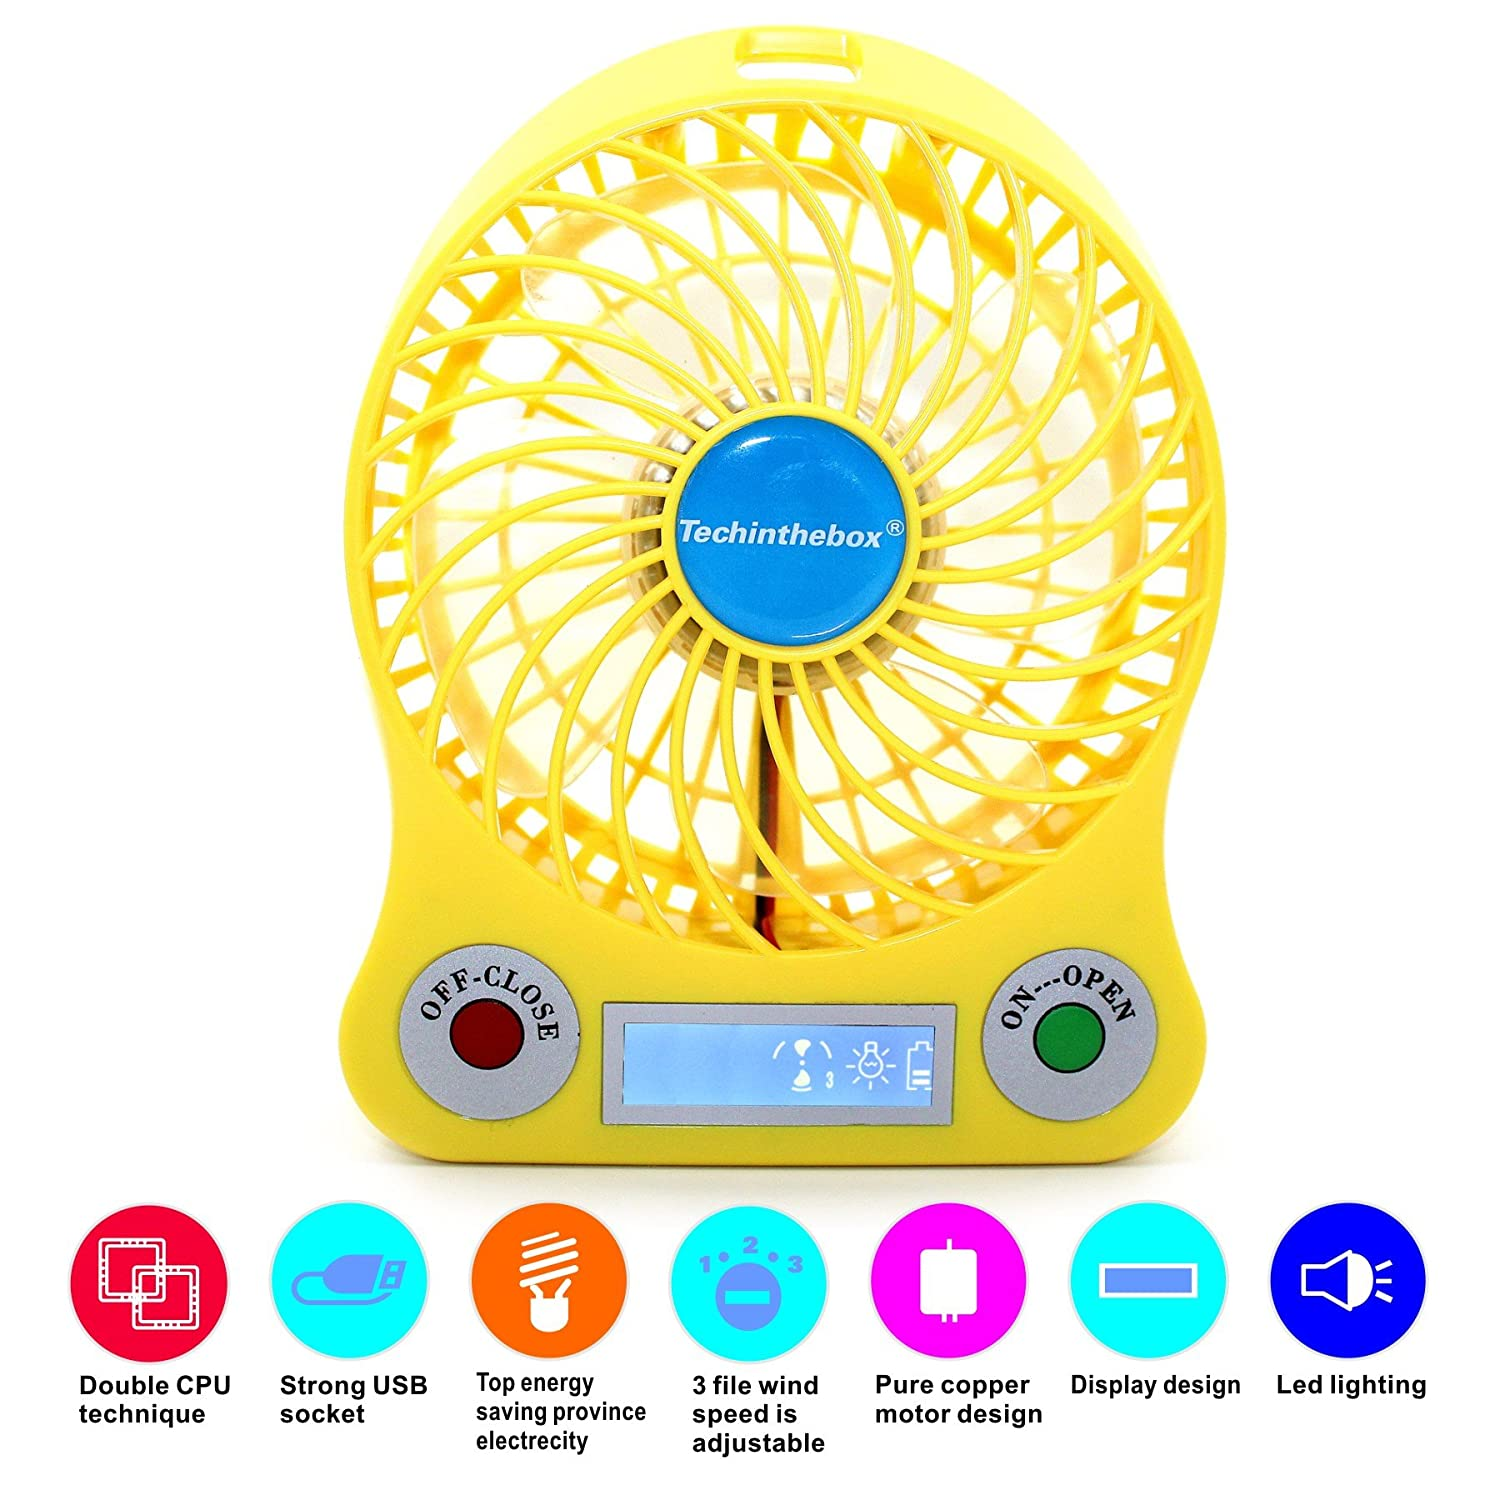 TechIntheBox LED display Portable Fan 4-inch 3 Speeds Mini USB Rechargeable Fan with LED Light Powered By Electric-powered or 18650 Lithium Rechargeable Battery Micro USB Cable Via USB Port of Notebook/ Computer, Cool Fan for Desktop Indoor and Outdoor Act